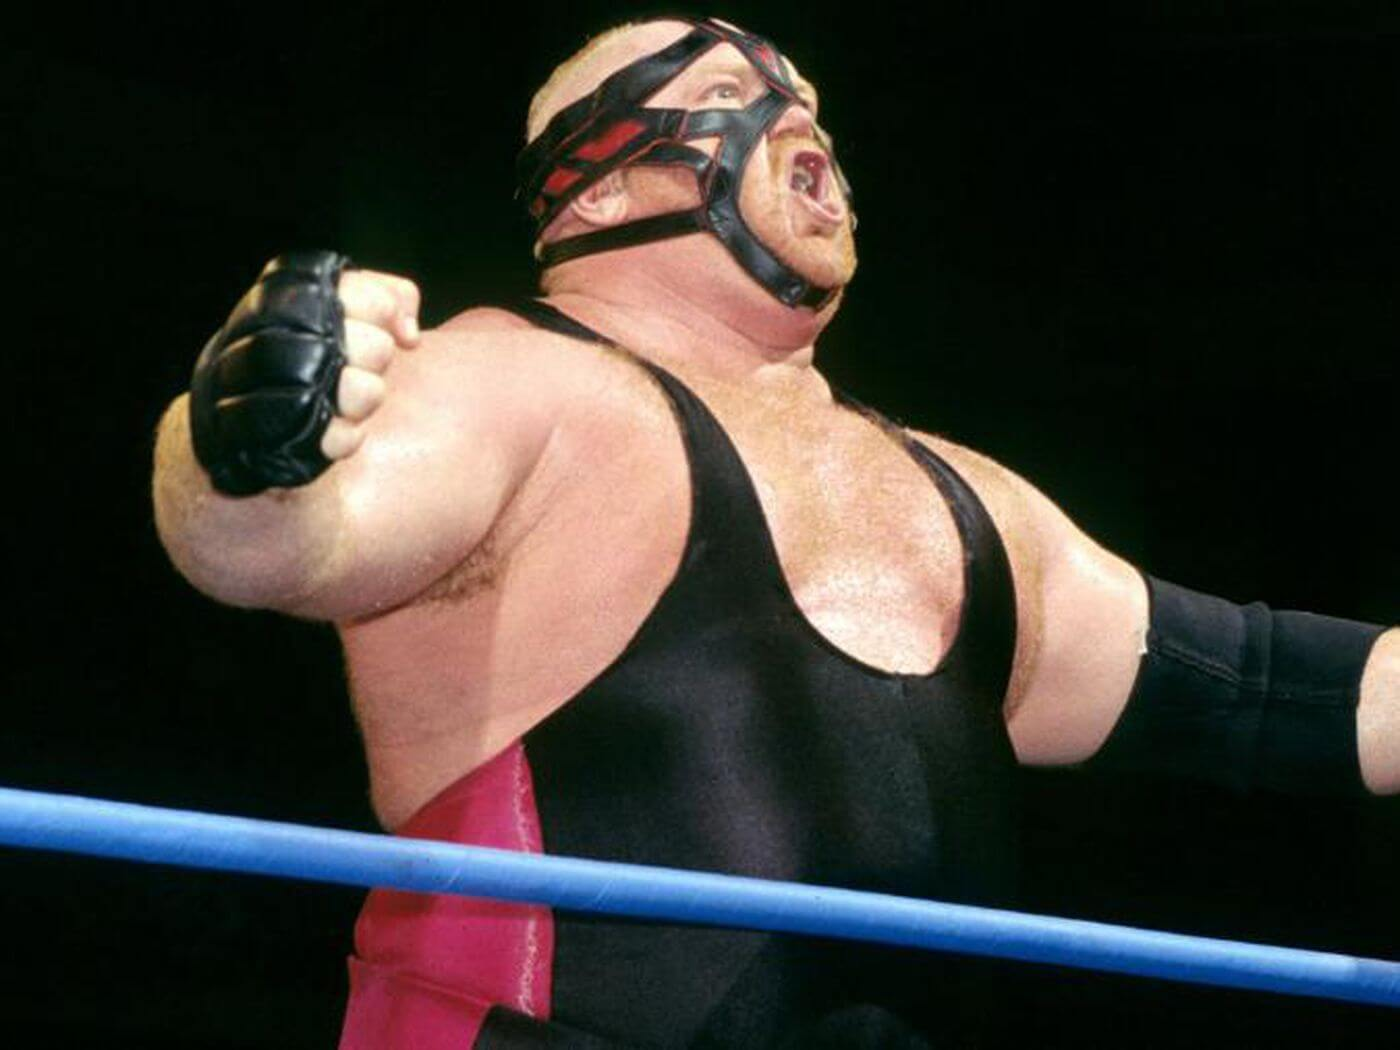 WWE LEGEND & Wrestling Icon VADER Dies From Heart Complications